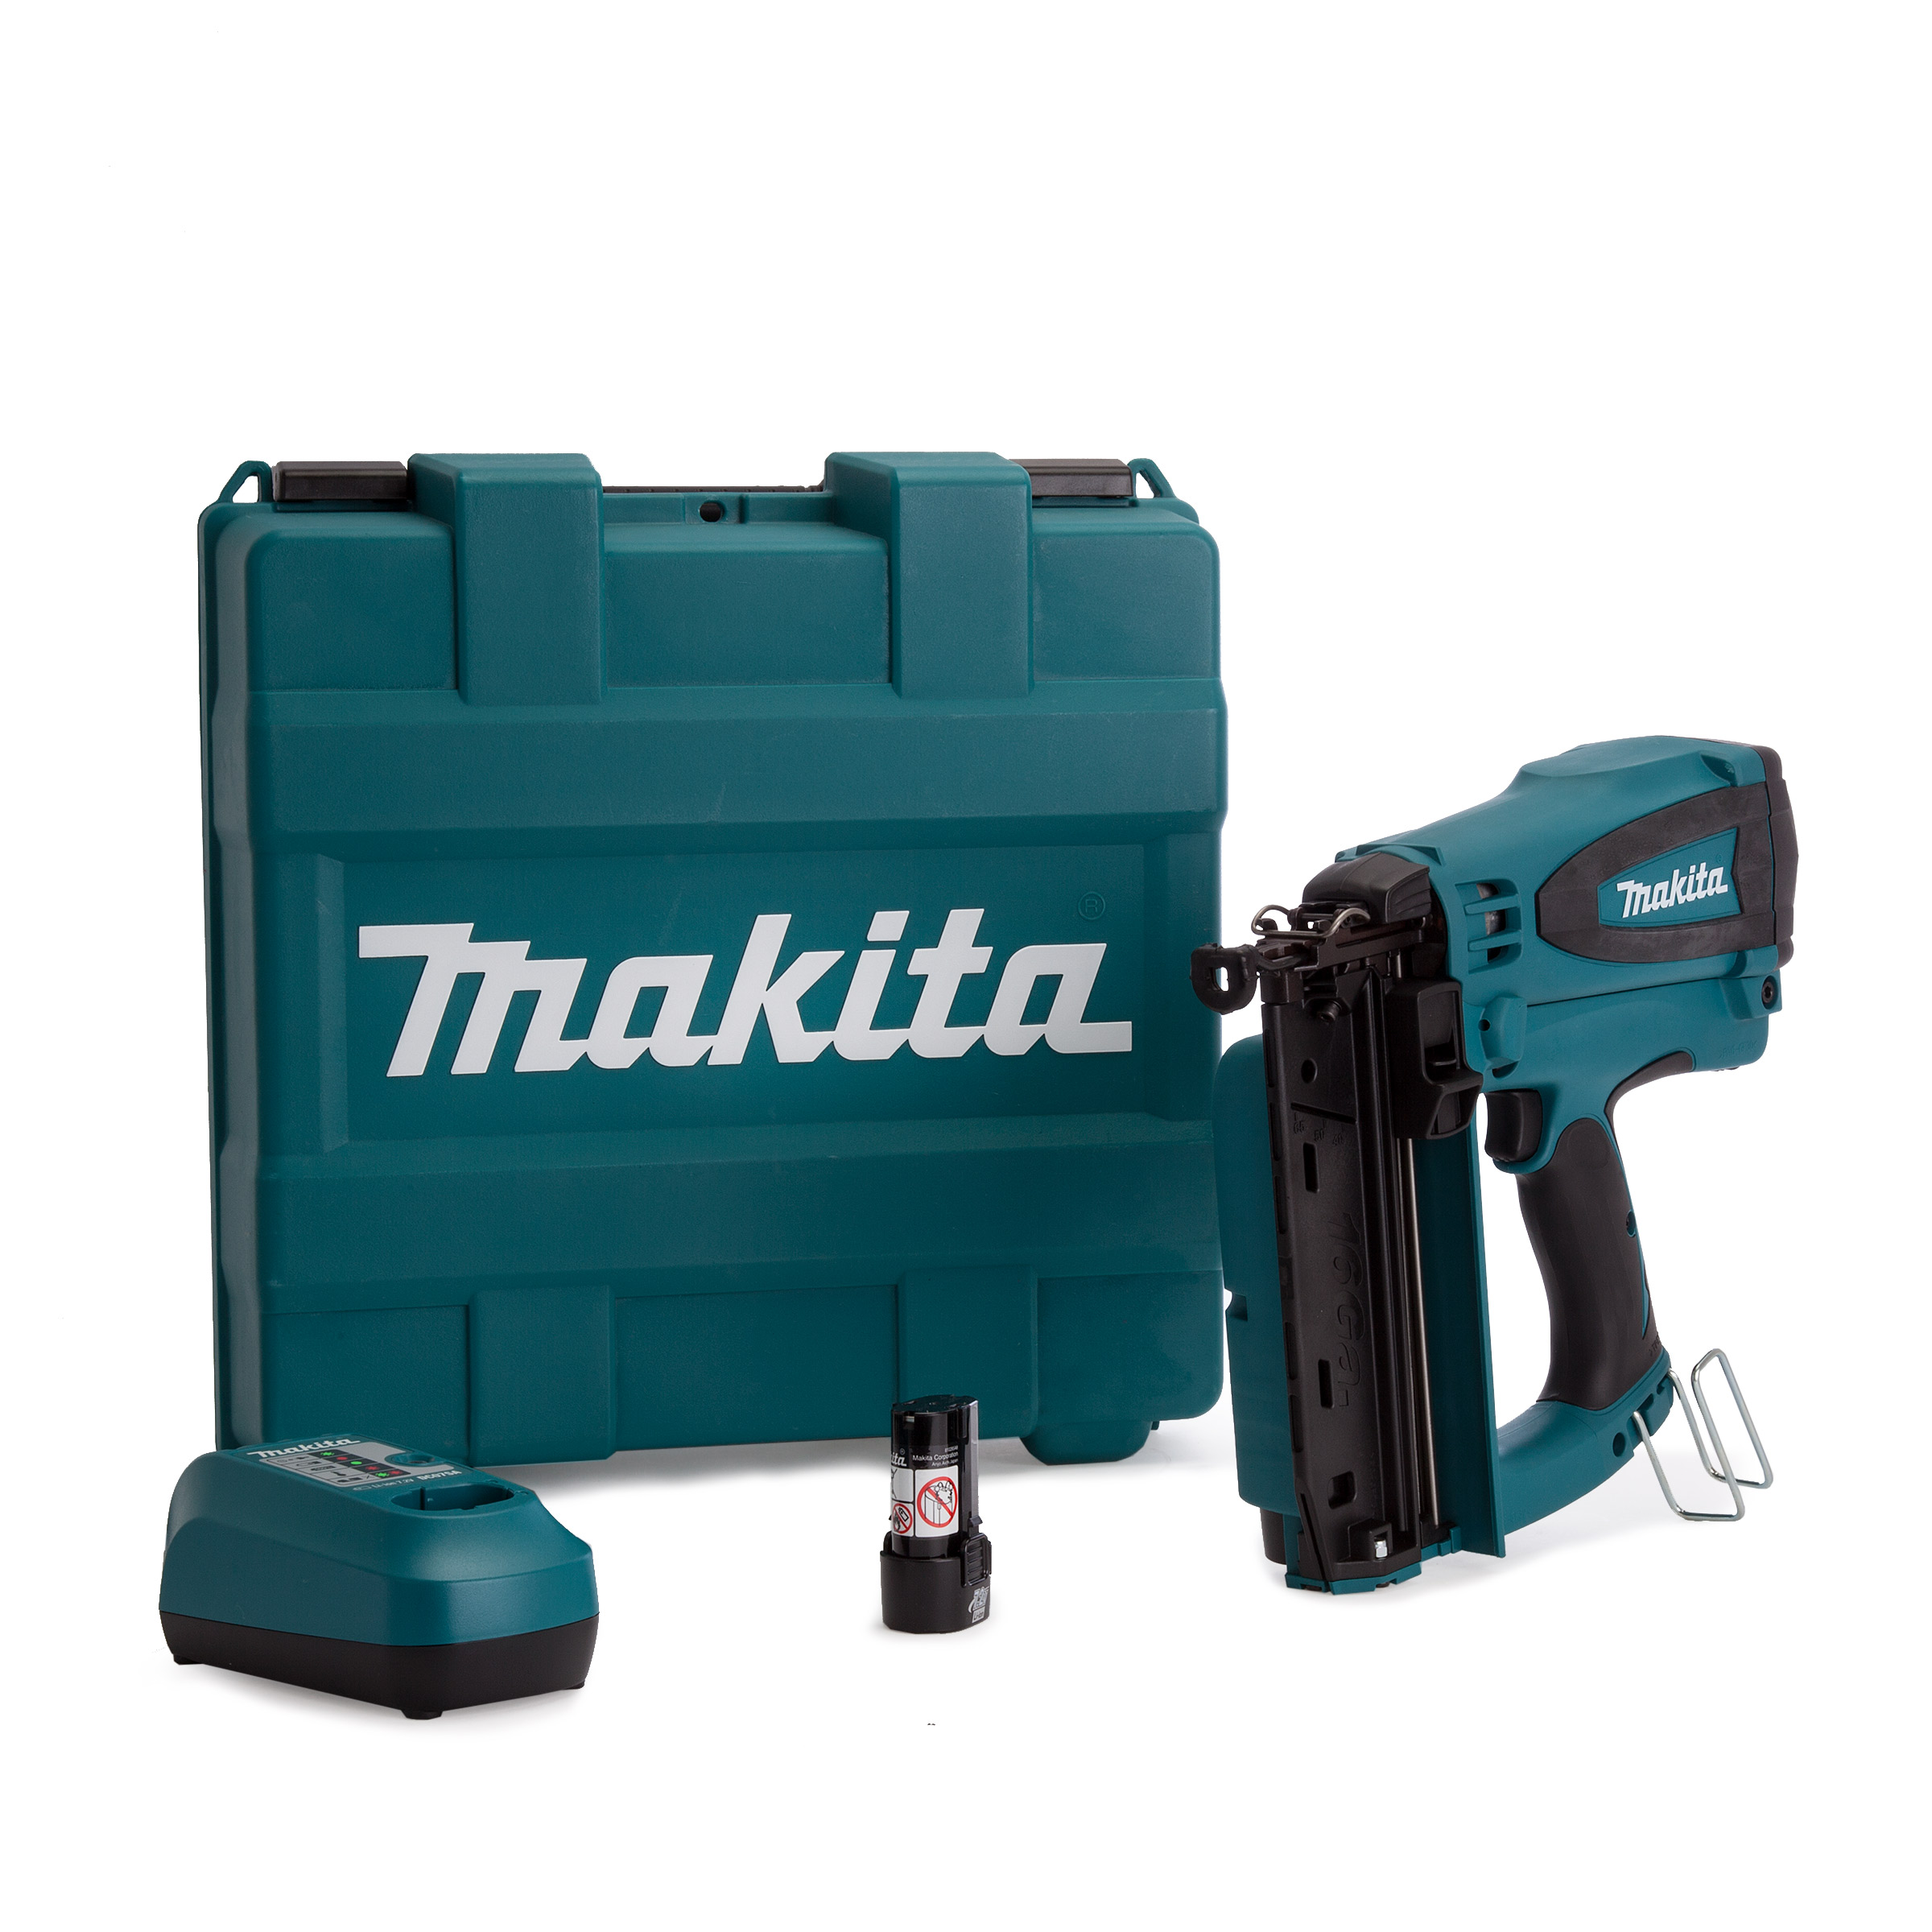 MAKITA 7.2V 2ND FIX FINISHING GAS NAIL GUN - GF600SE